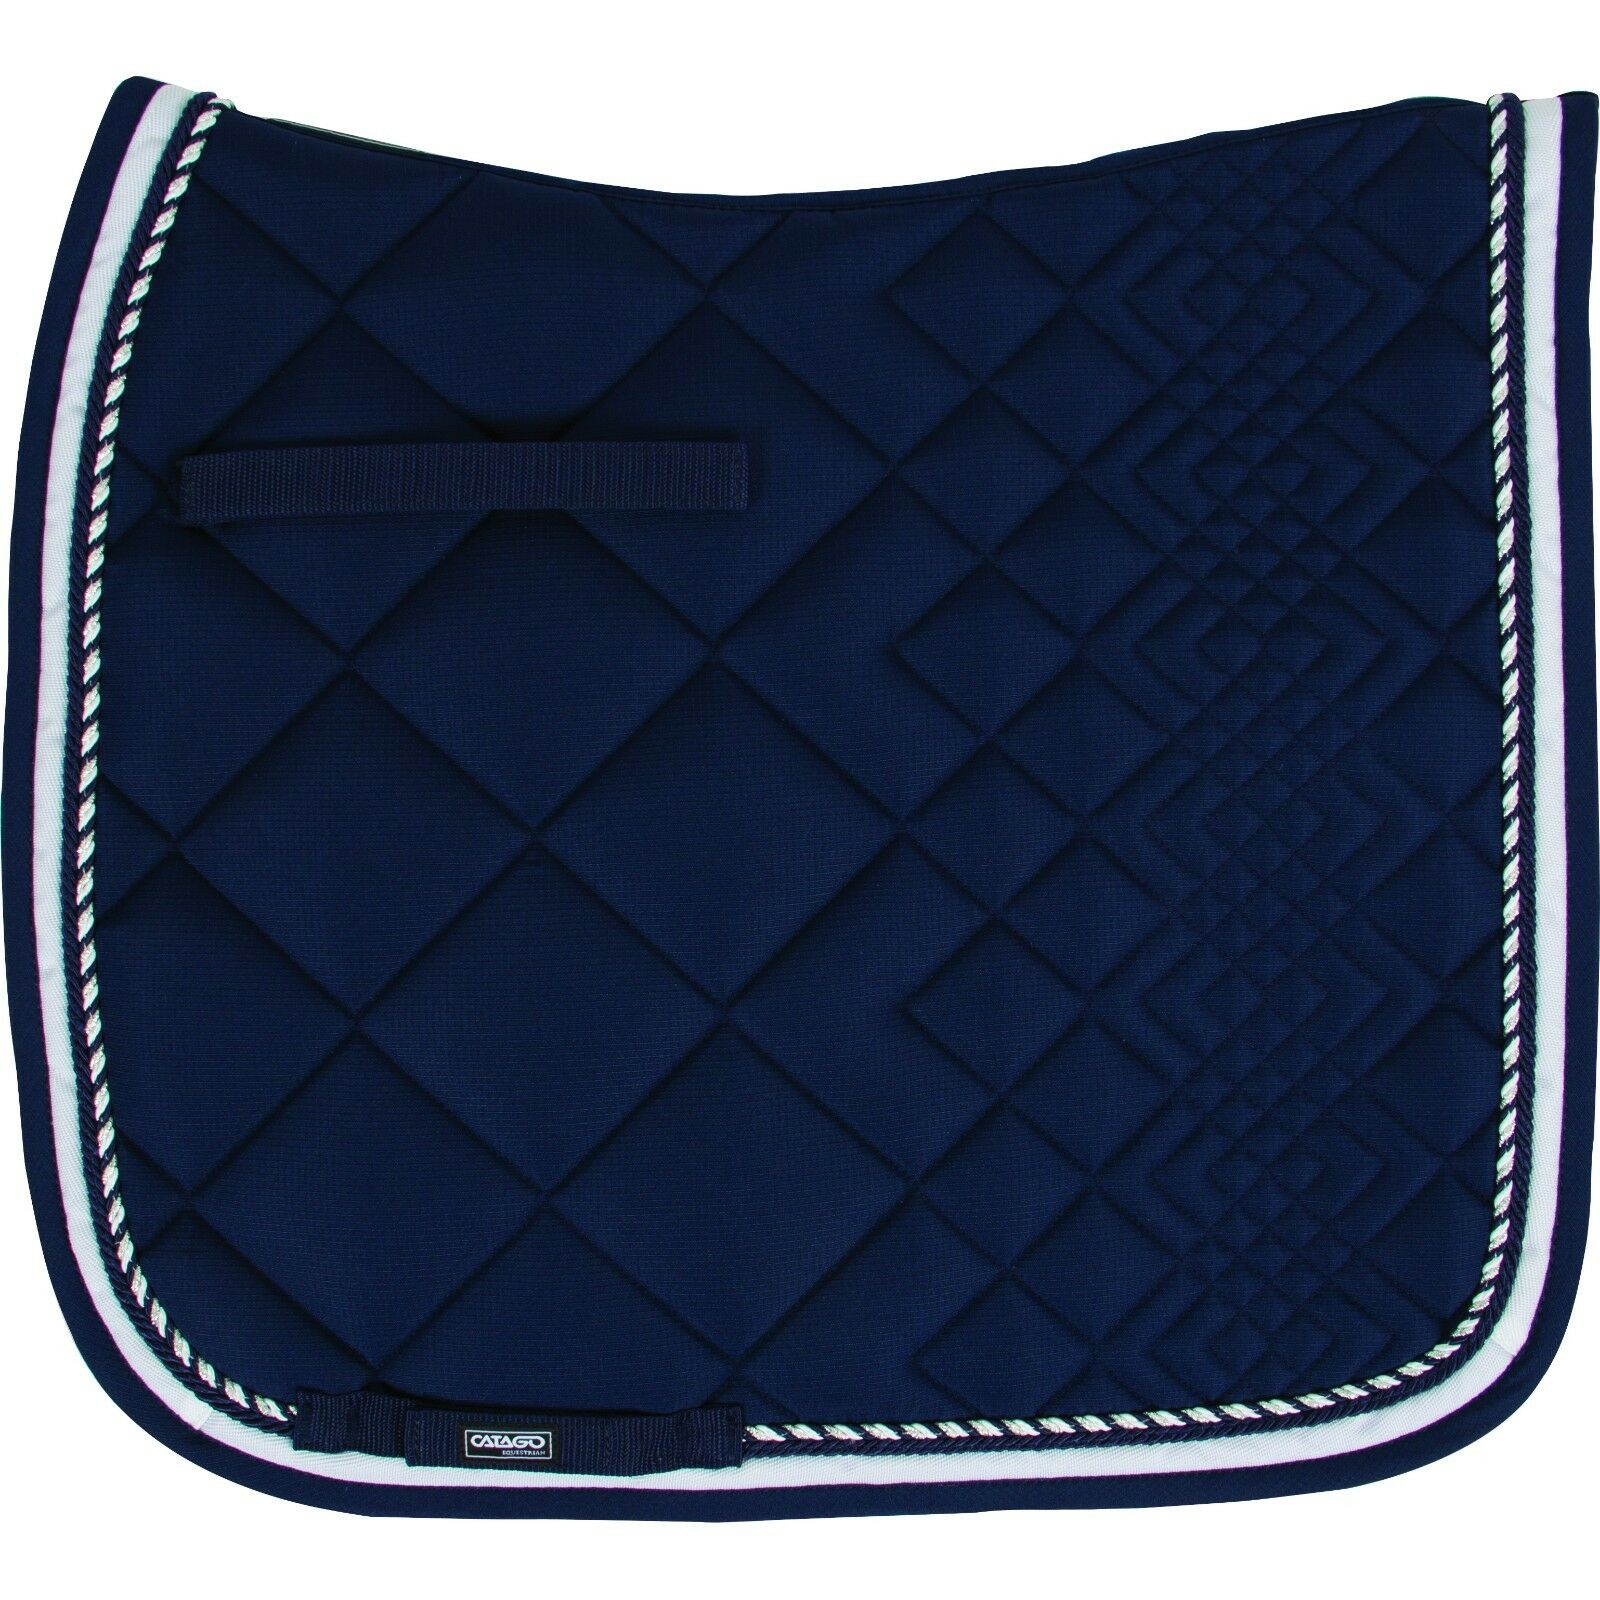 CATAGO Different Equestrian Diamond Saddle Pad - Dressage - Different CATAGO Farbes 89aaa8